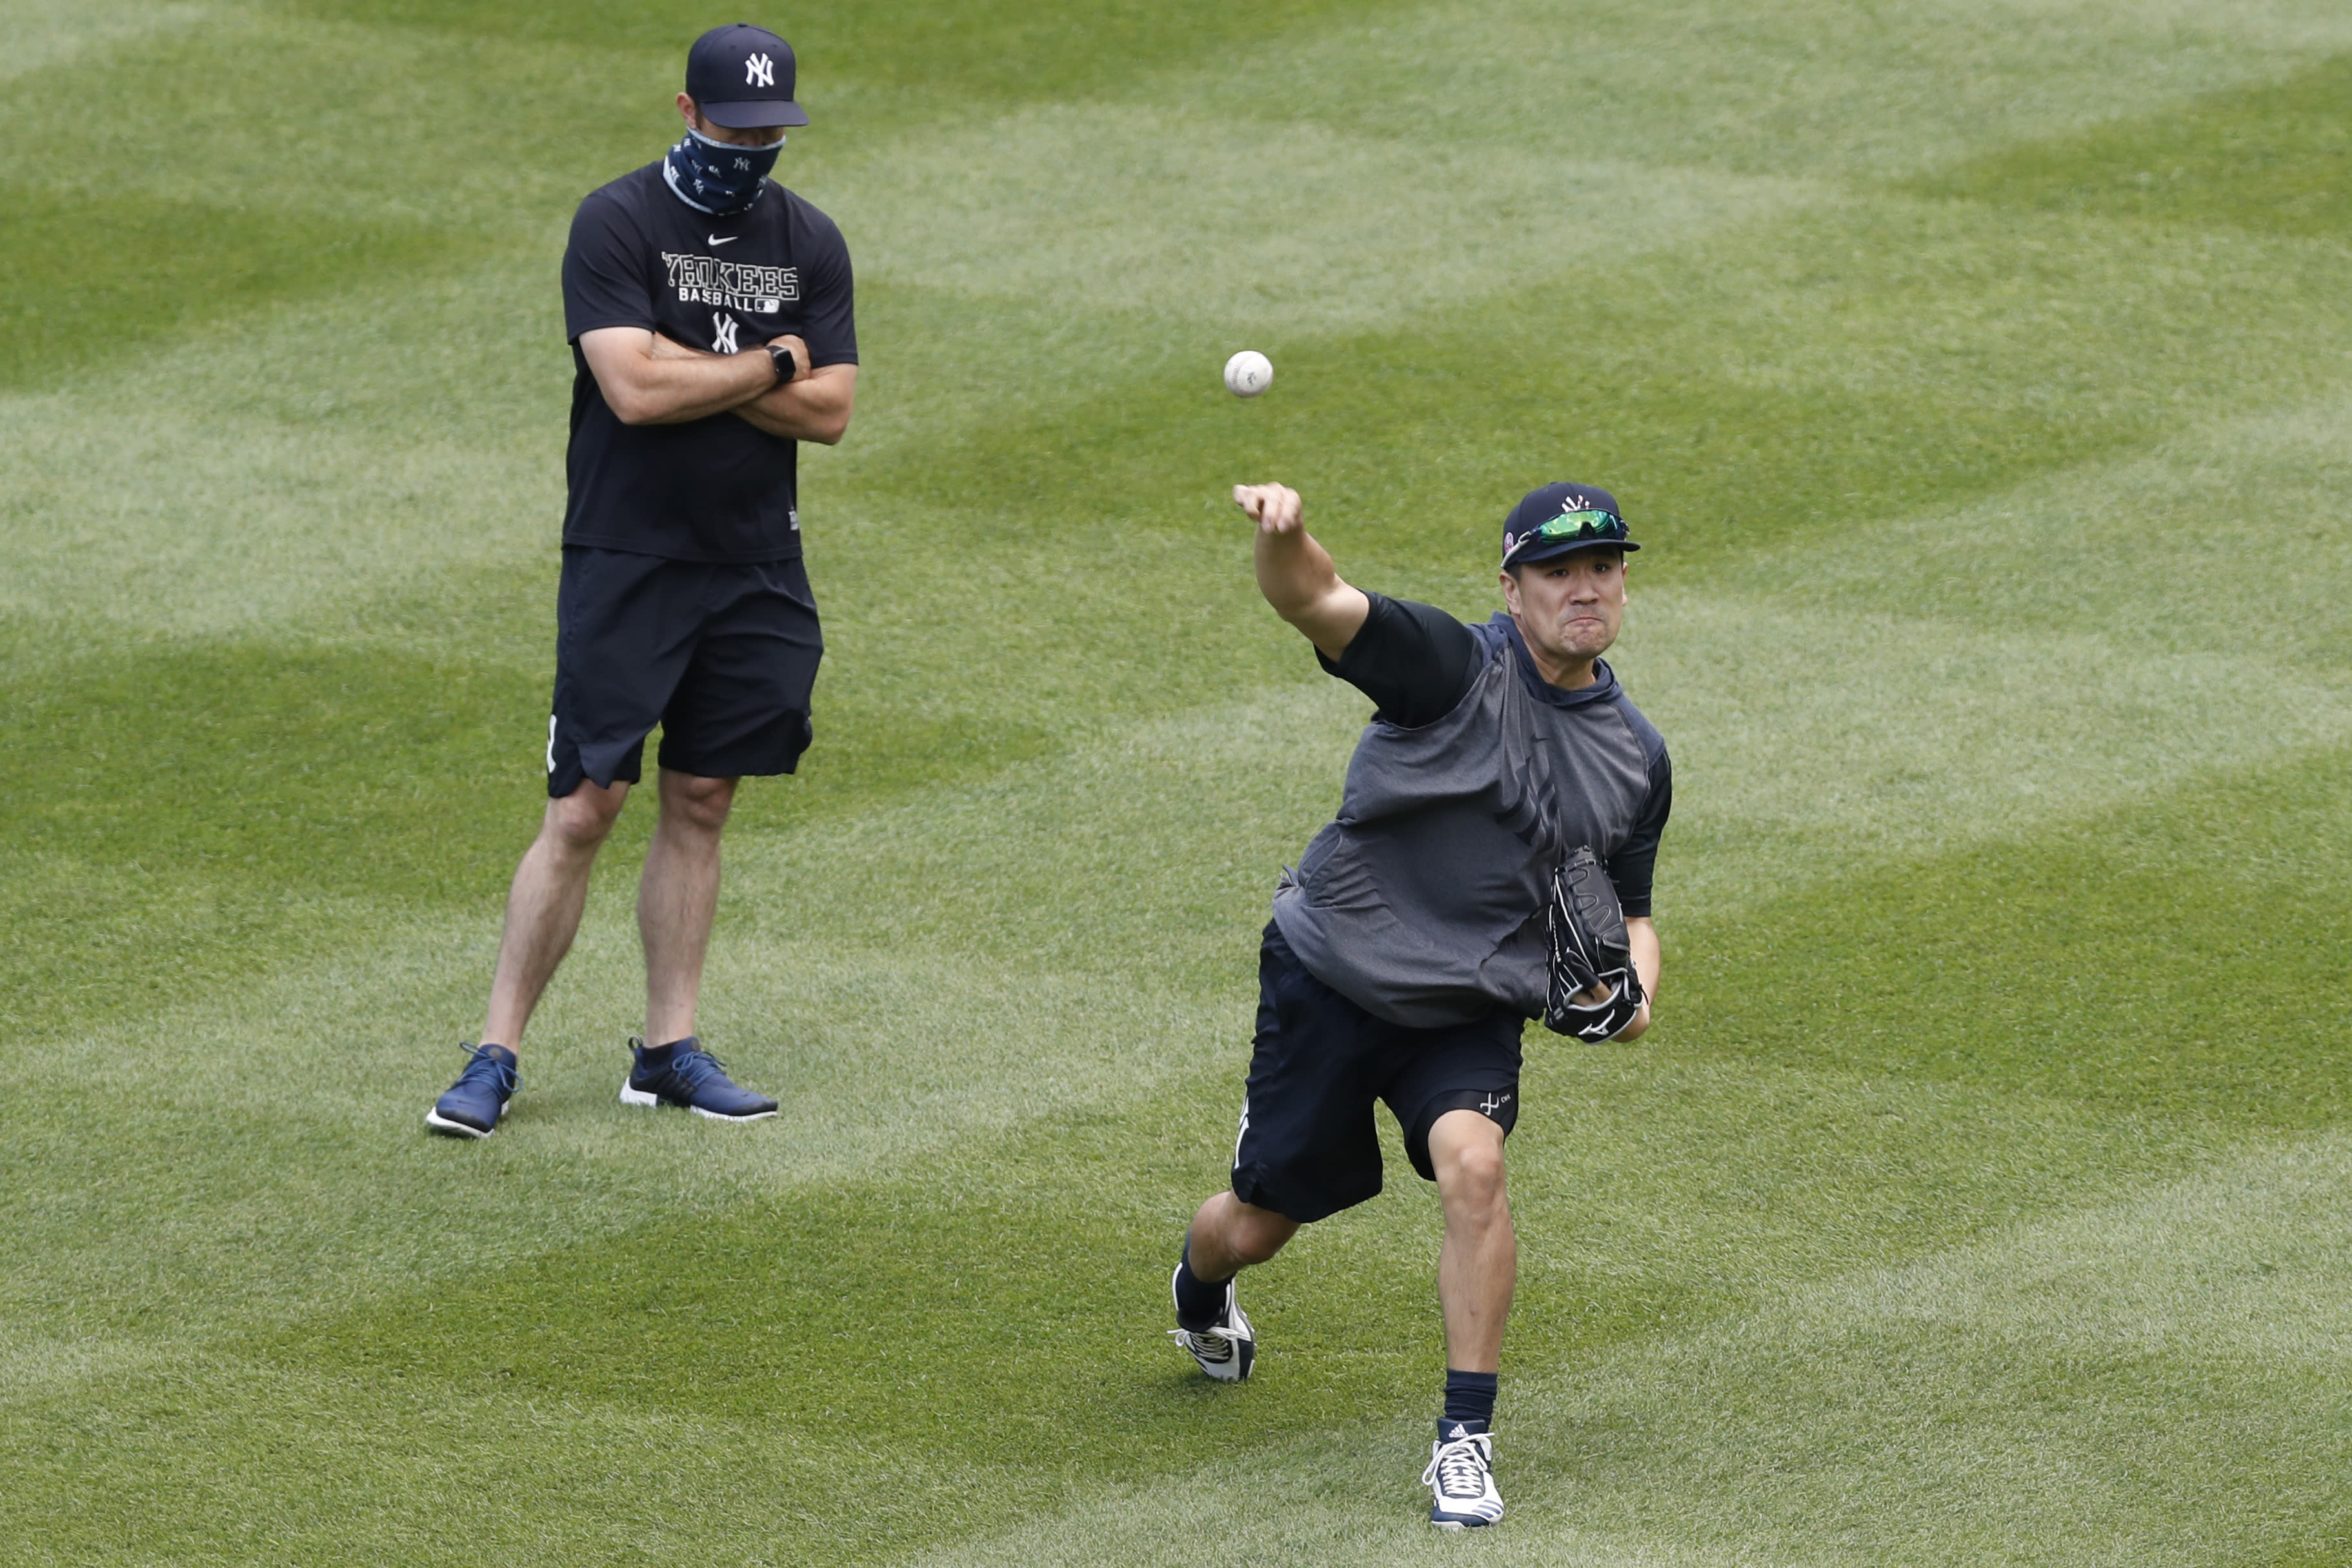 New York Yankees pitching coach Matt Blake, left, watches starting pitcher Masahiro Tanaka throw in the outfield at the Yankees summer baseball training camp, Wednesday, July 15, 2020, at Yankee Stadium in New York. Tanaka was struck in the head by a line drive off the bat of Giancarlo Stanton on July 4th. (AP Photo/Kathy Willens)